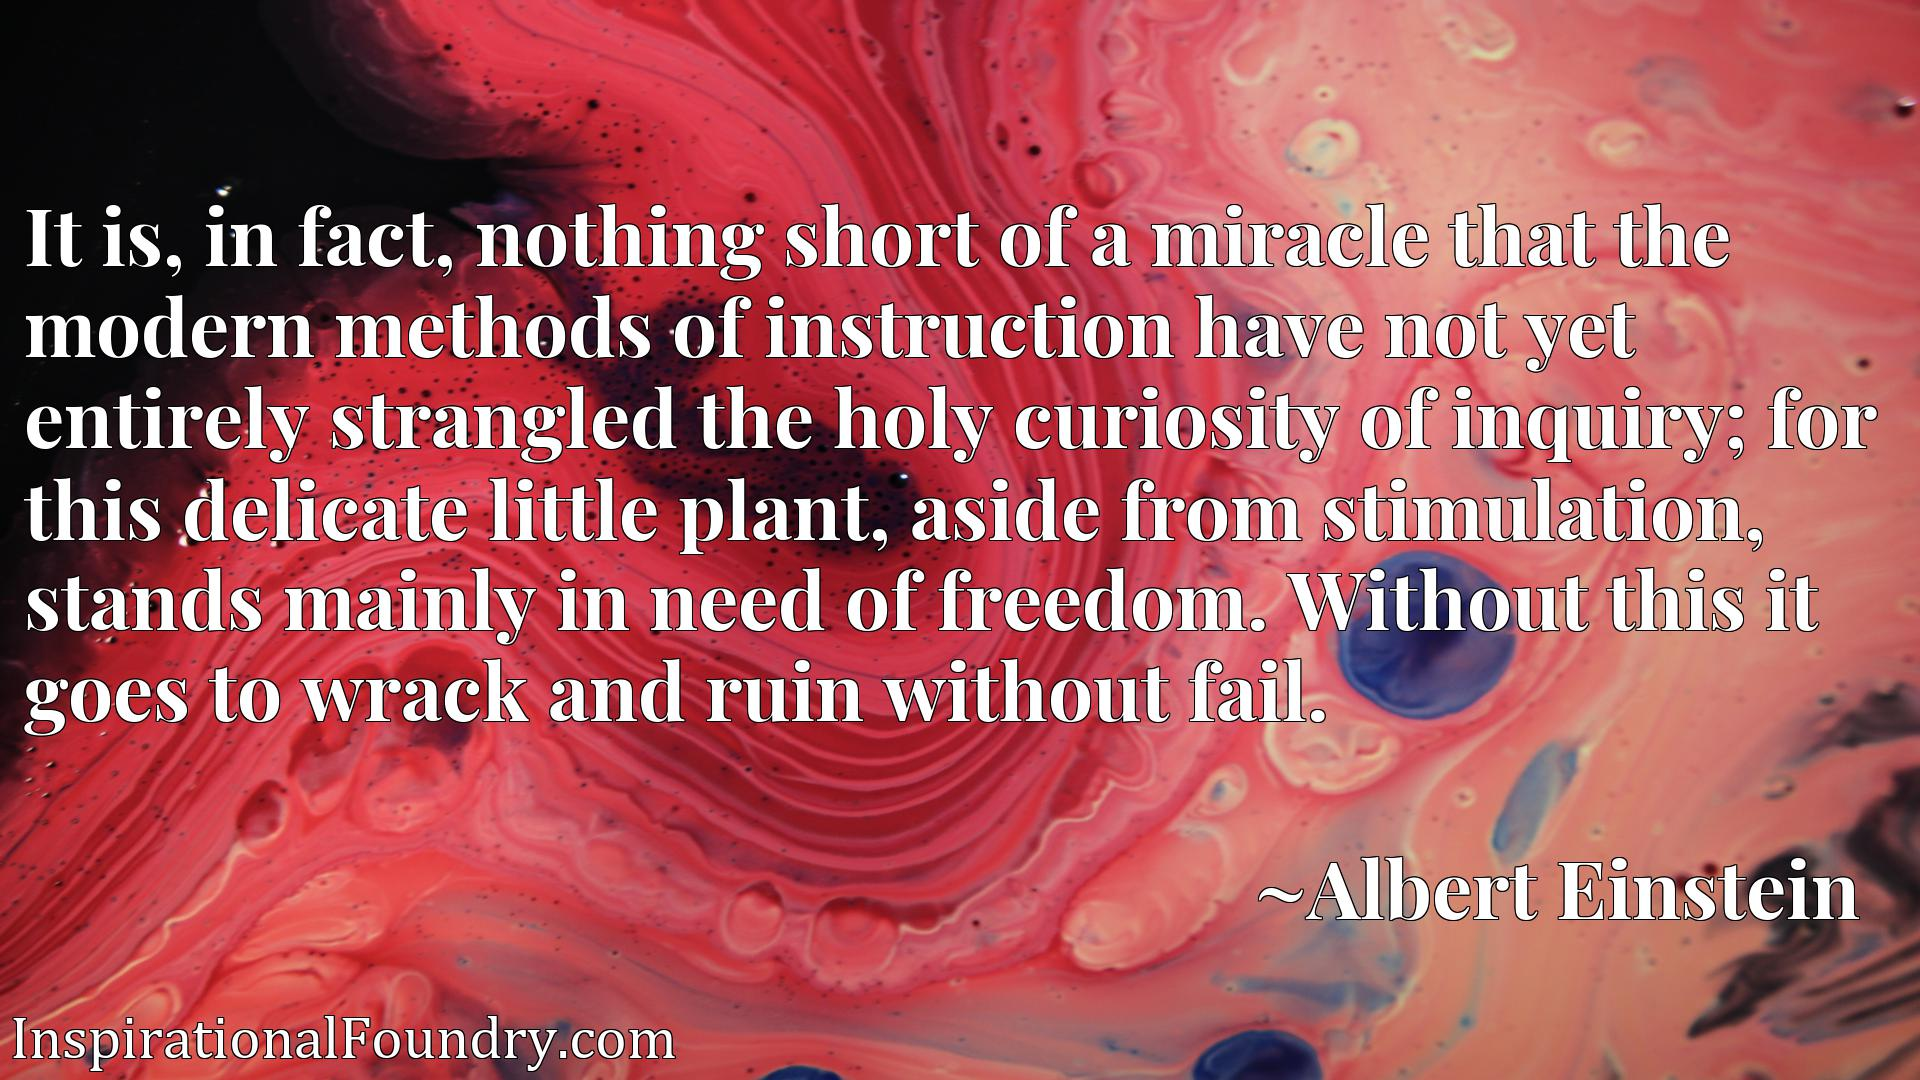 It is, in fact, nothing short of a miracle that the modern methods of instruction have not yet entirely strangled the holy curiosity of inquiry; for this delicate little plant, aside from stimulation, stands mainly in need of freedom. Without this it goes to wrack and ruin without fail.